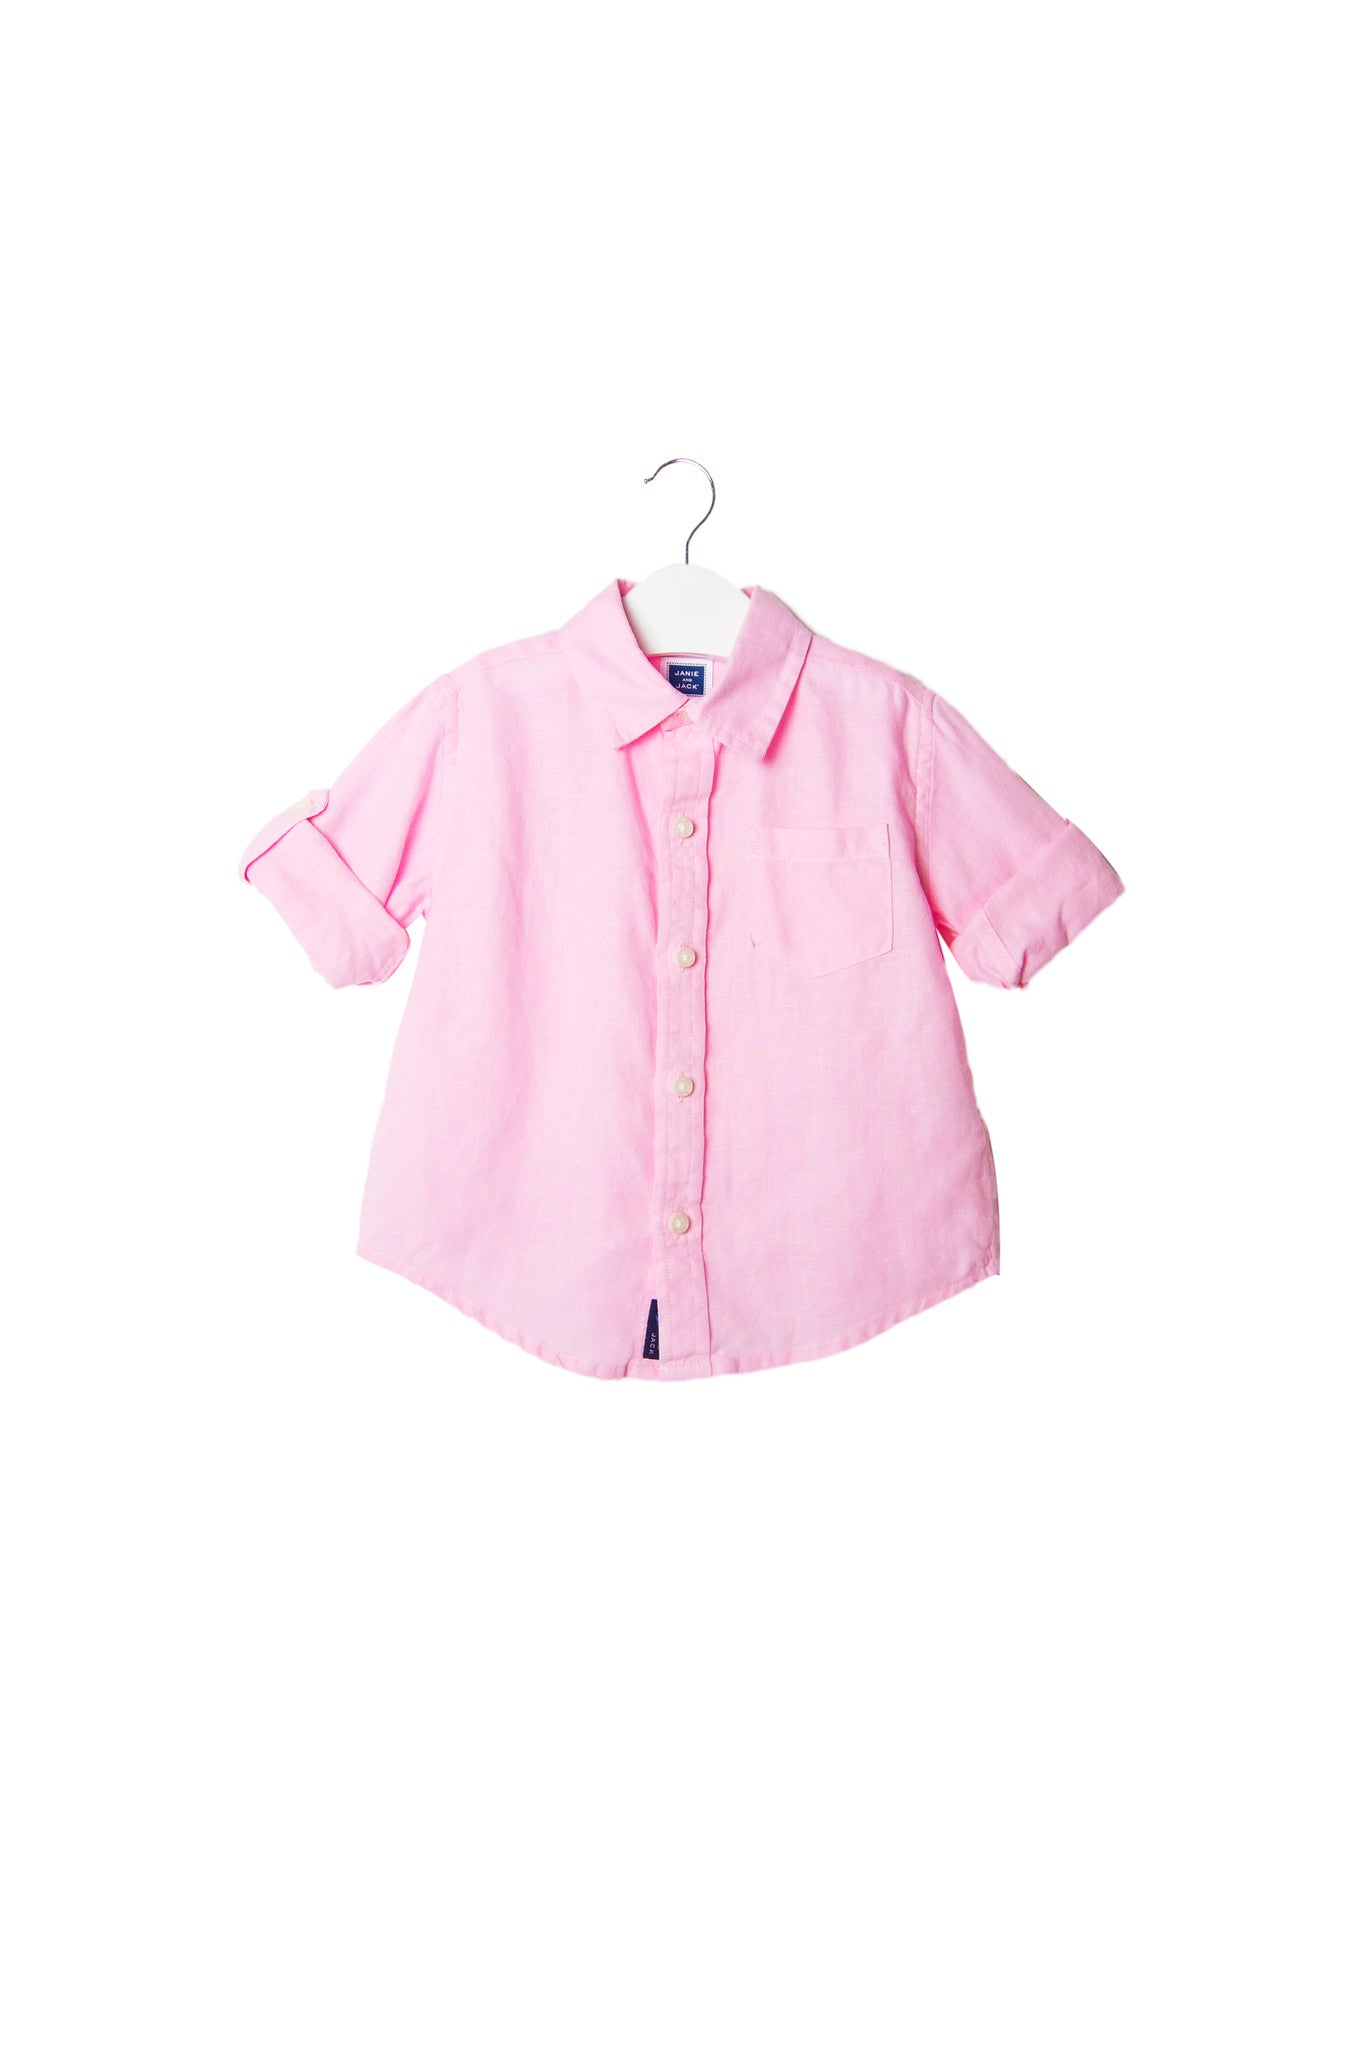 10003341 Janie & Jack Baby~Shirt 12-18M at Retykle